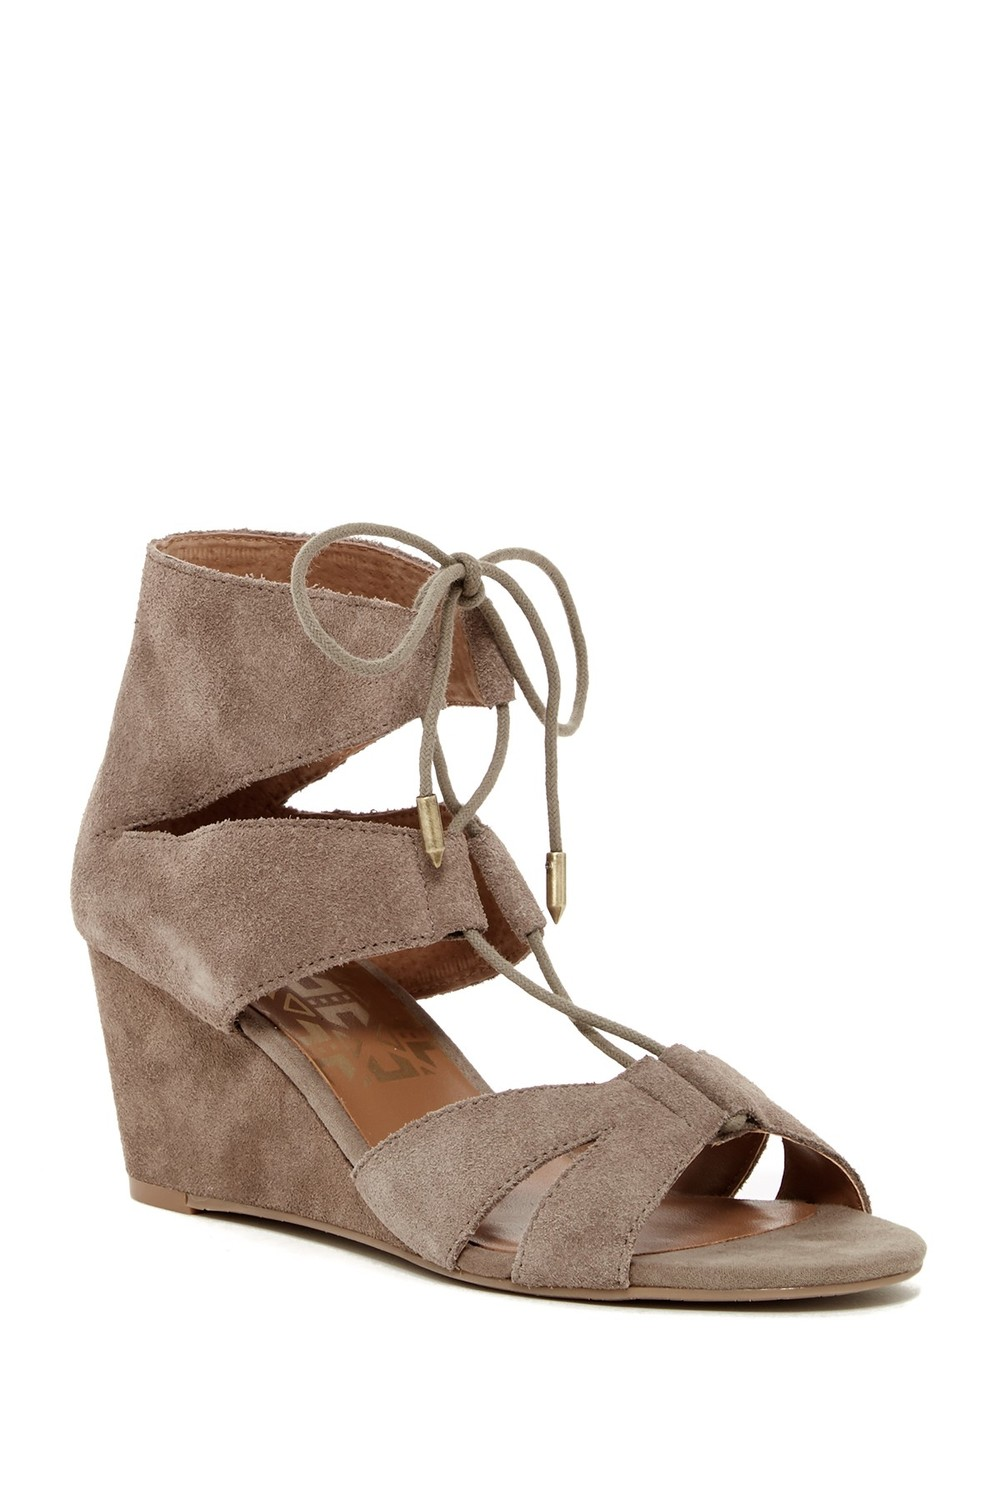 Dolce Vita Larana Chunky Sandal. Available in two colors. Nordstrom Rack. Was: $129 Now: $79.